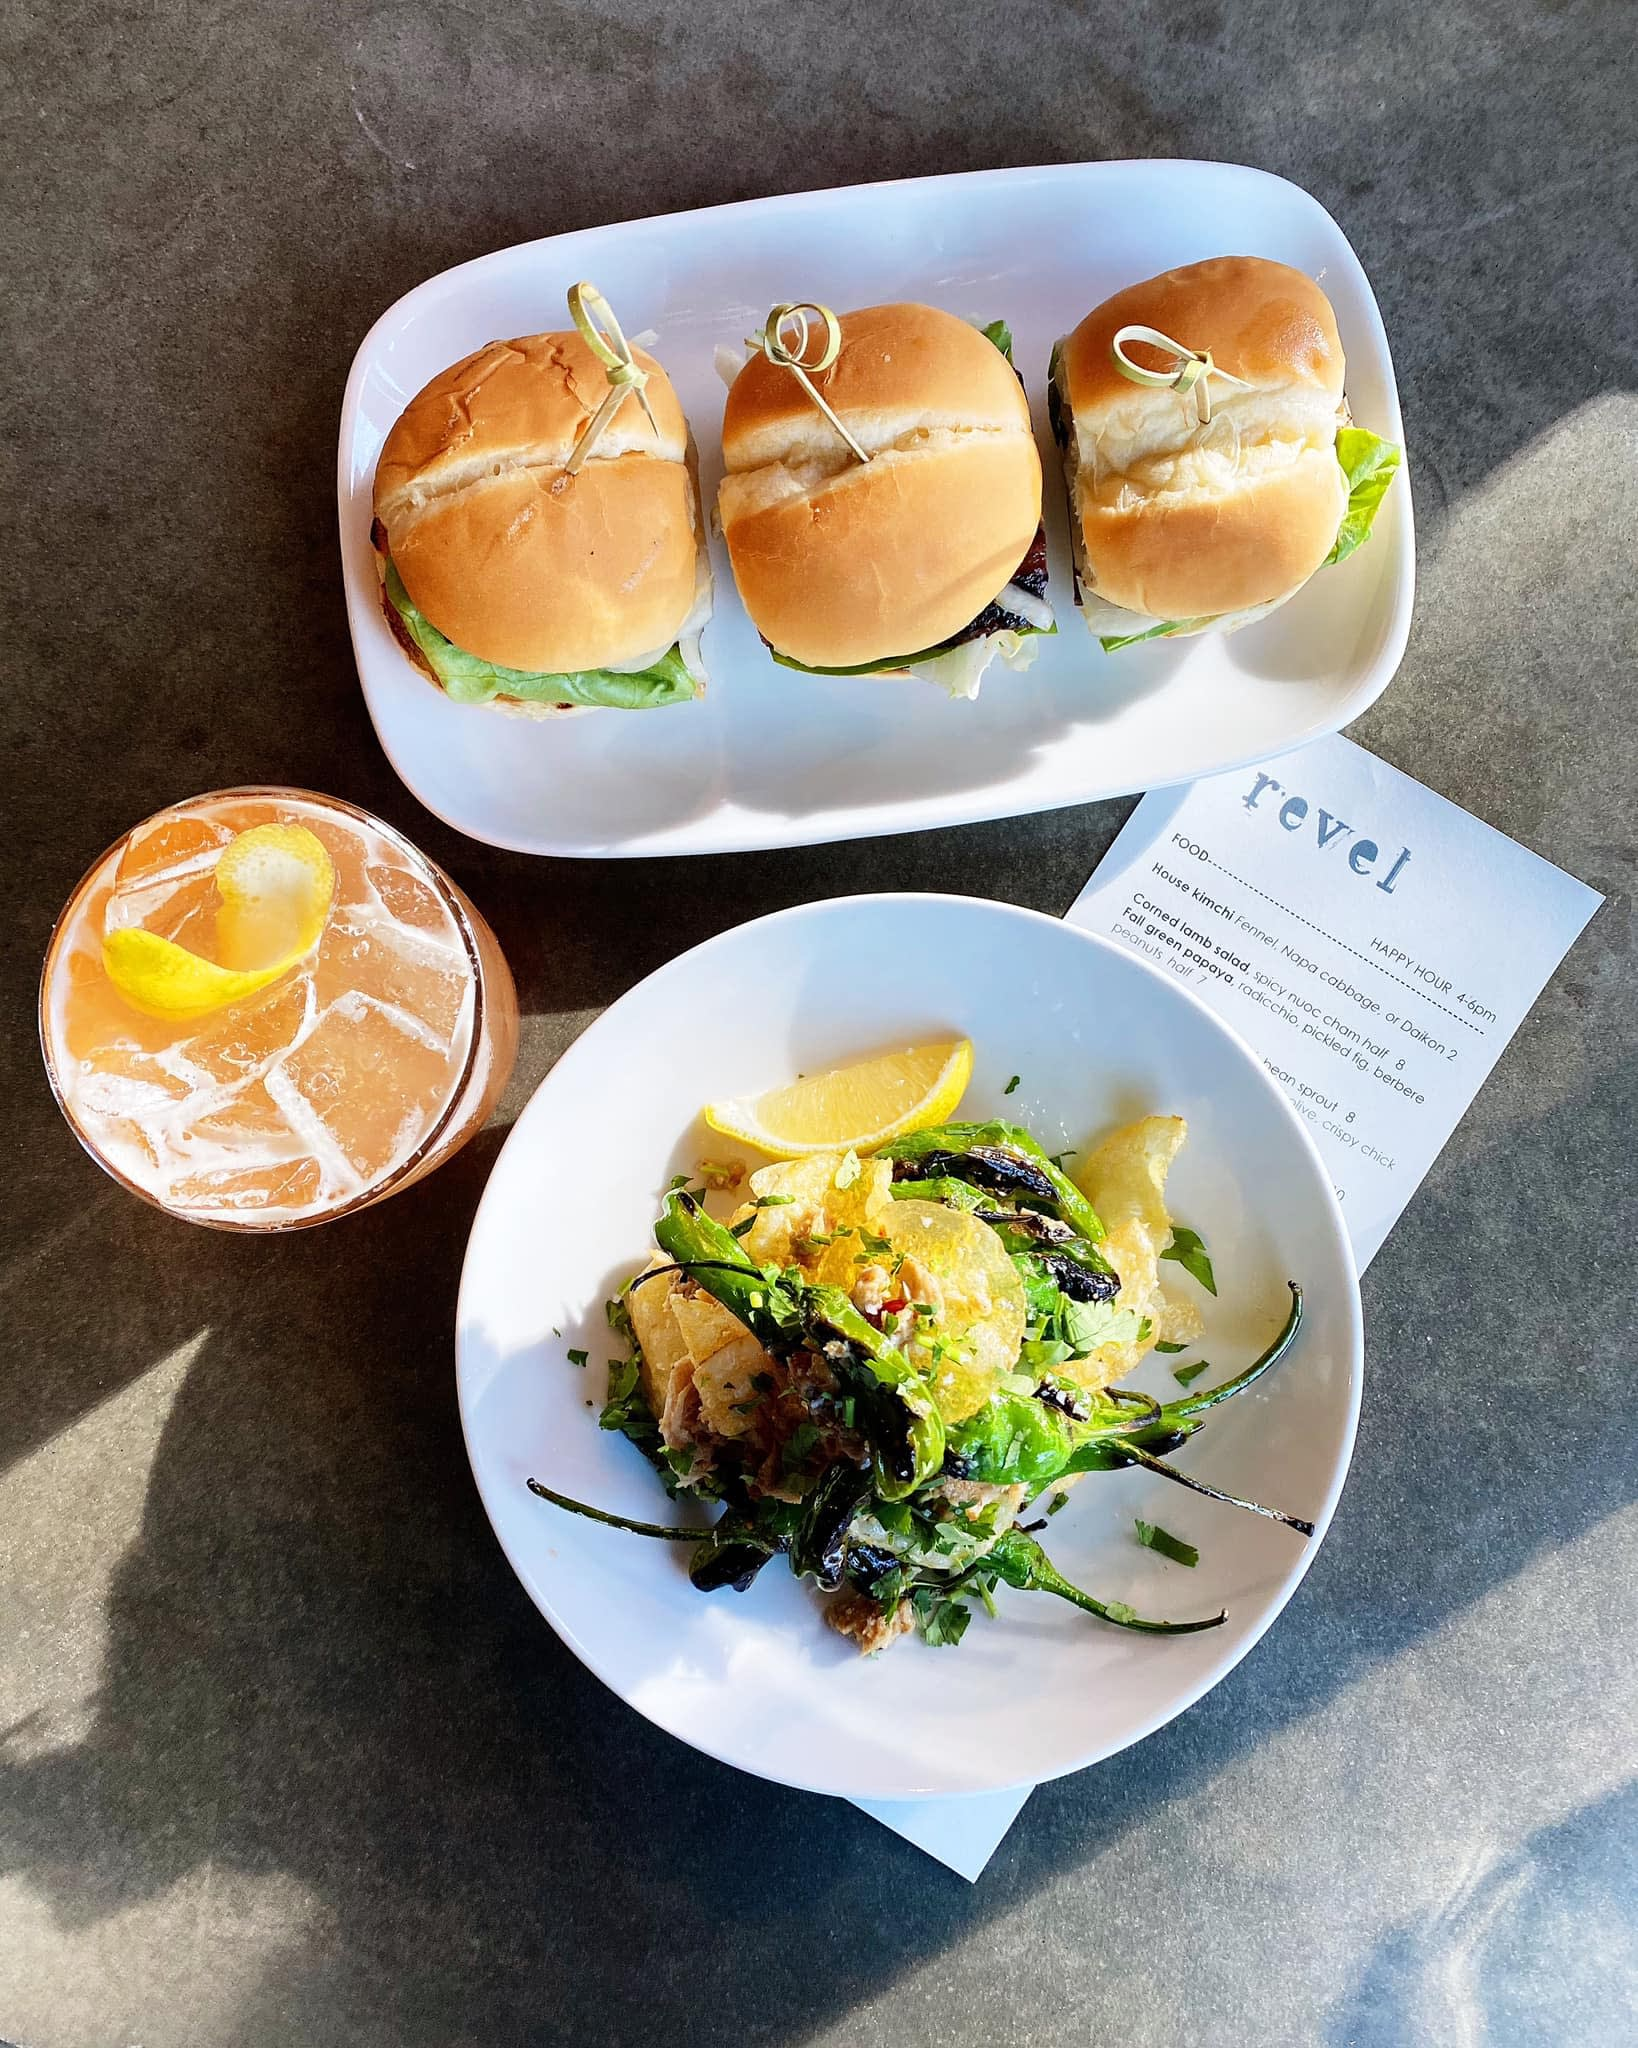 Slider and Salad from Revel